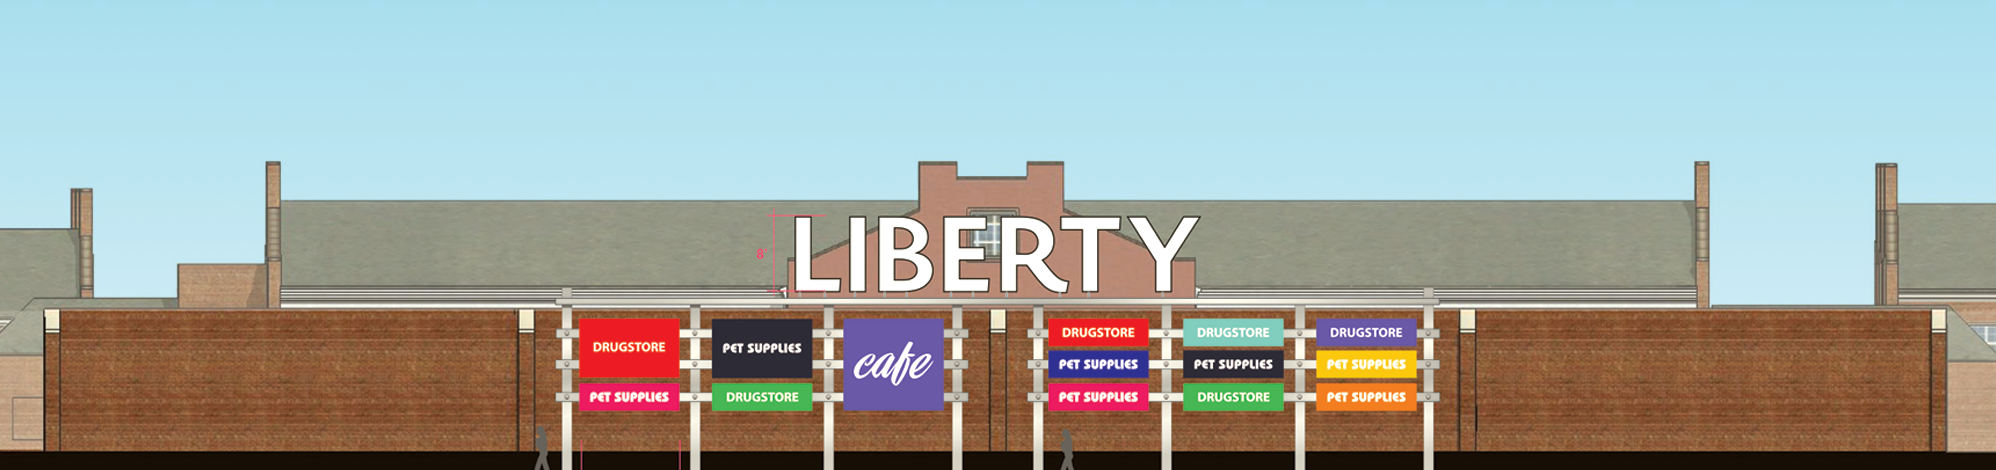 Liberty-shop-Rendering